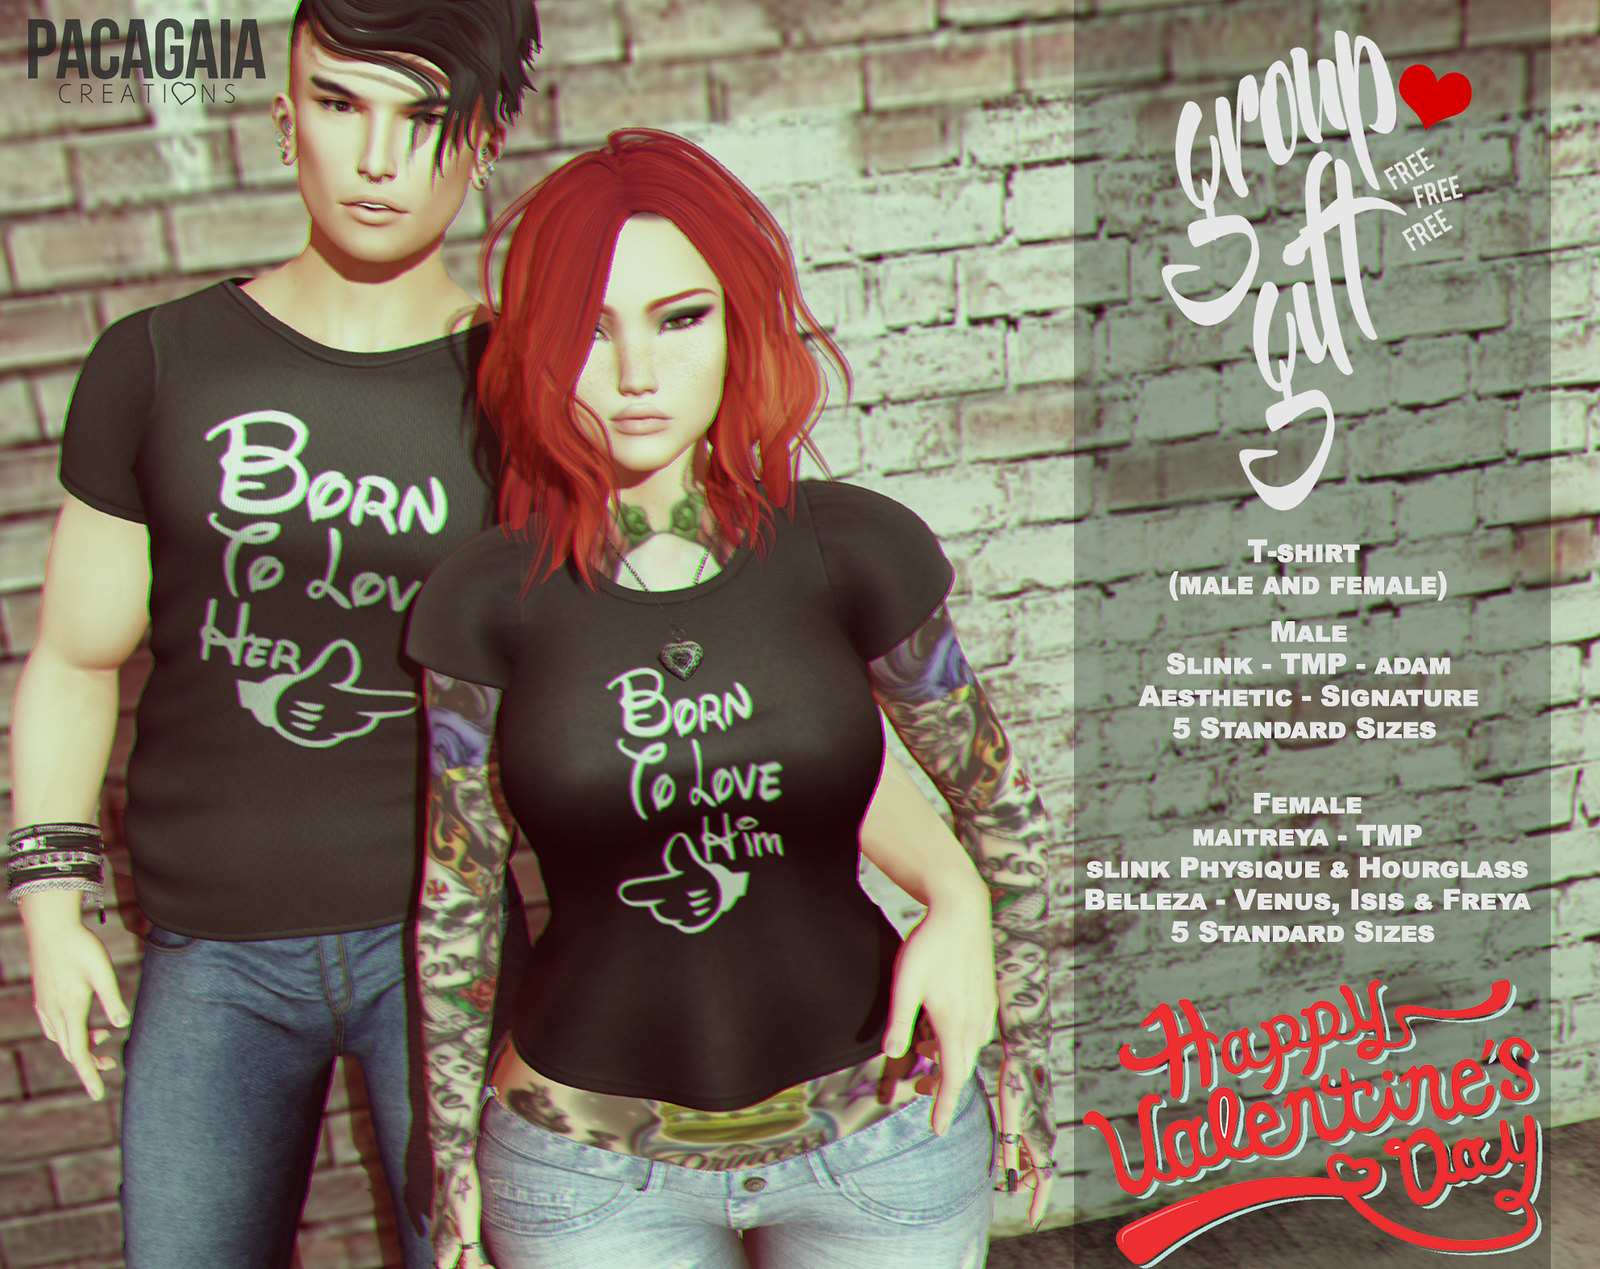 COUPLE T-SHIRT - GROUP GIFT FREE - FEBRUARY#2